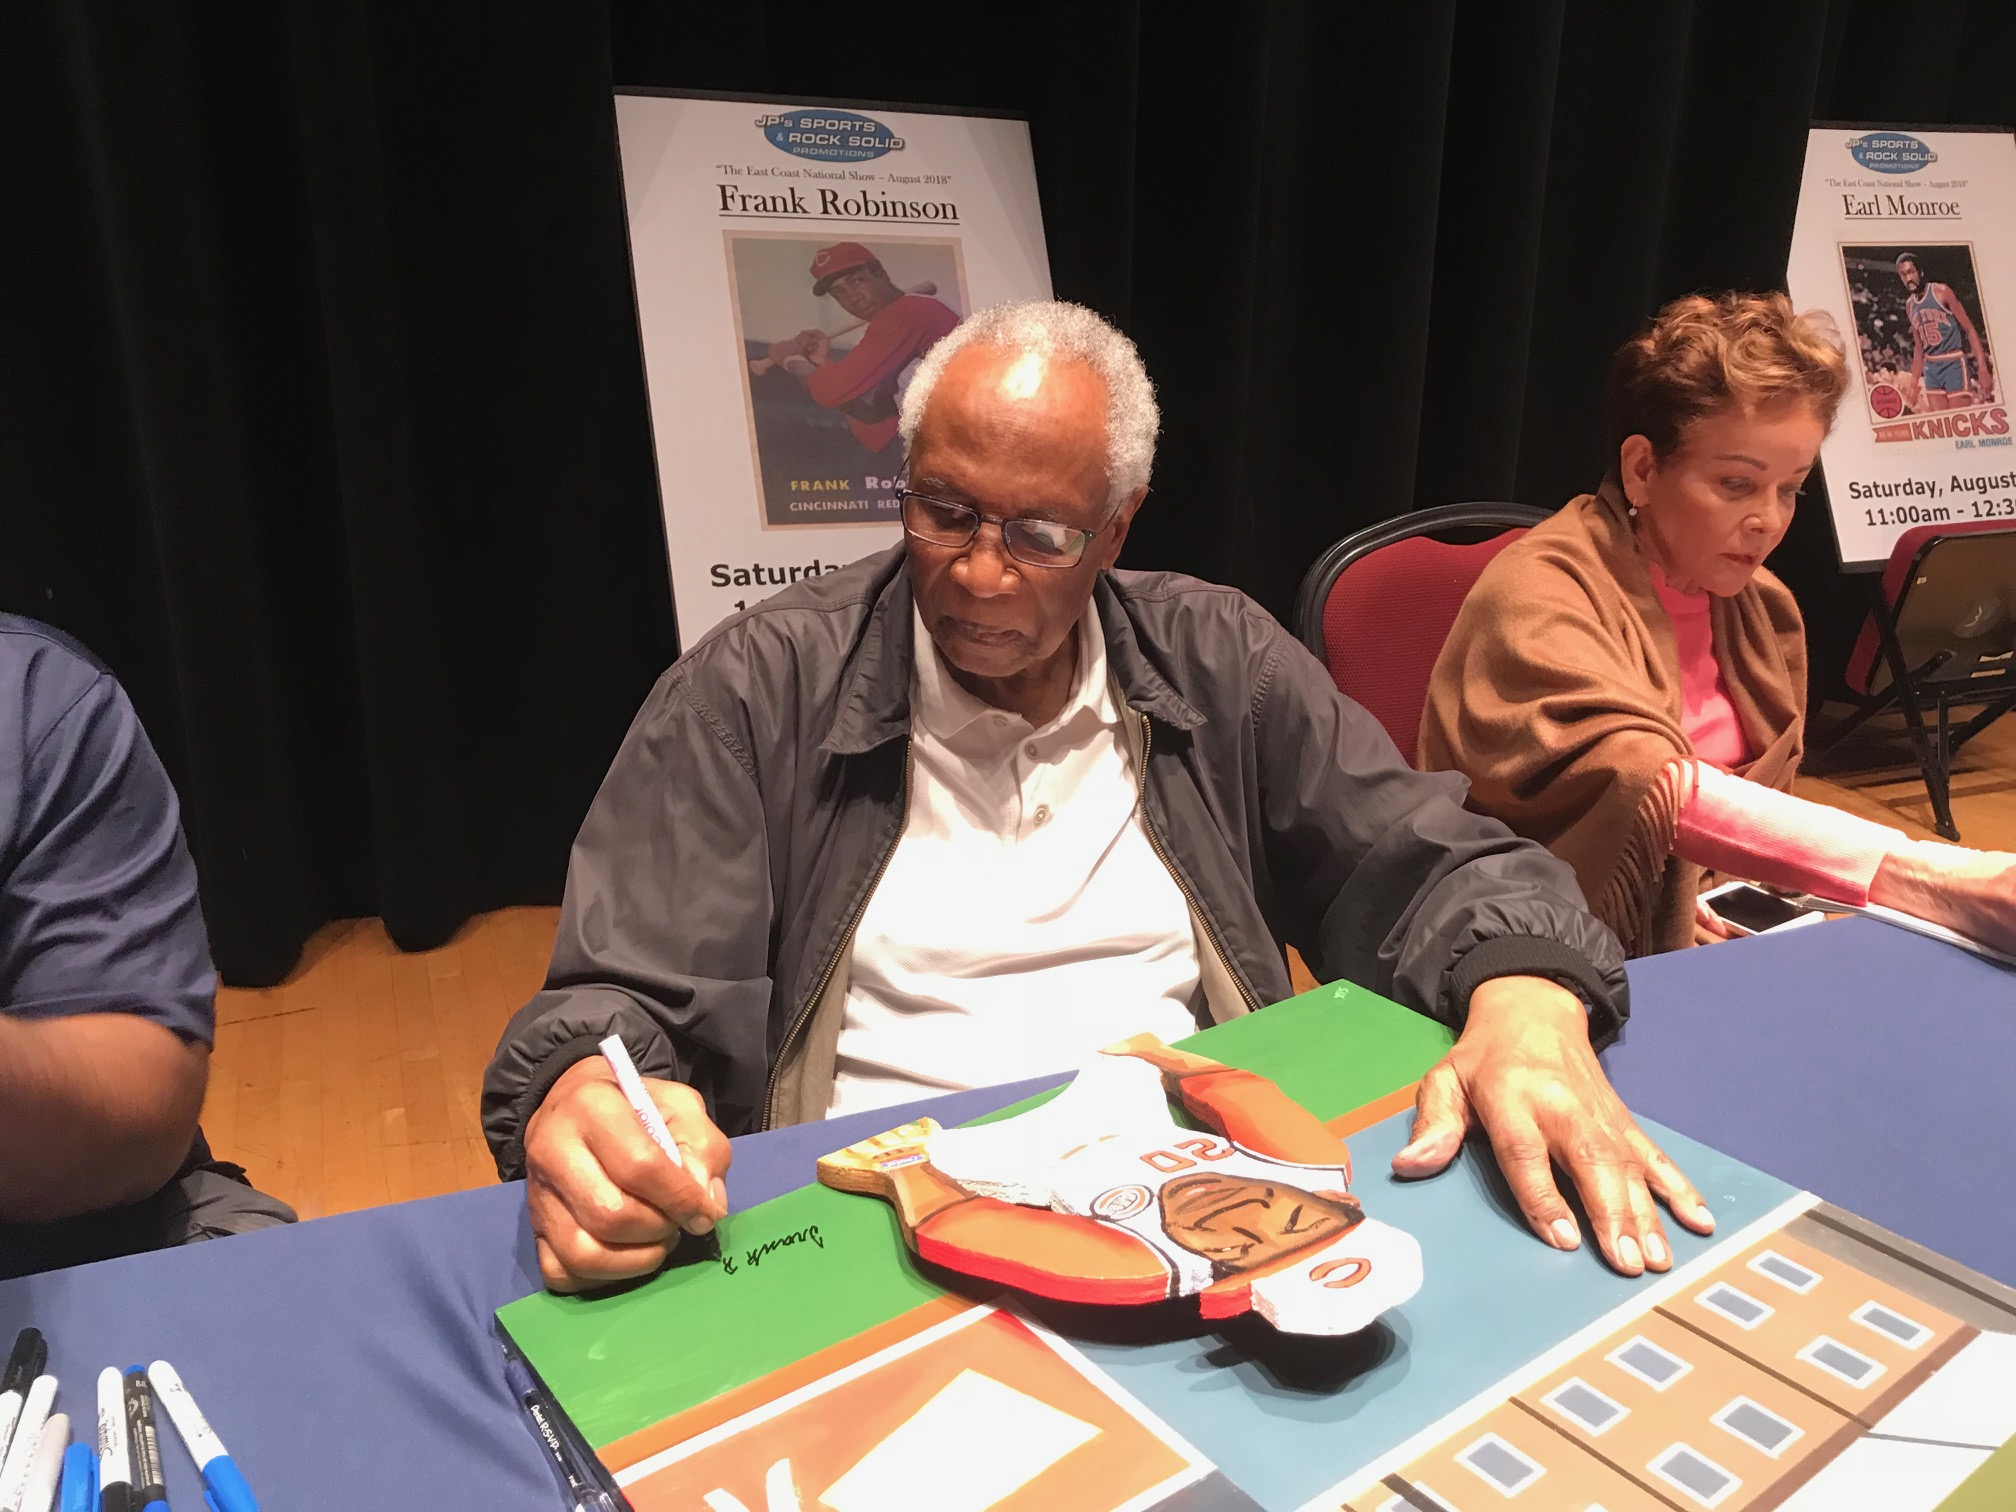 Frank Robinson signing painting